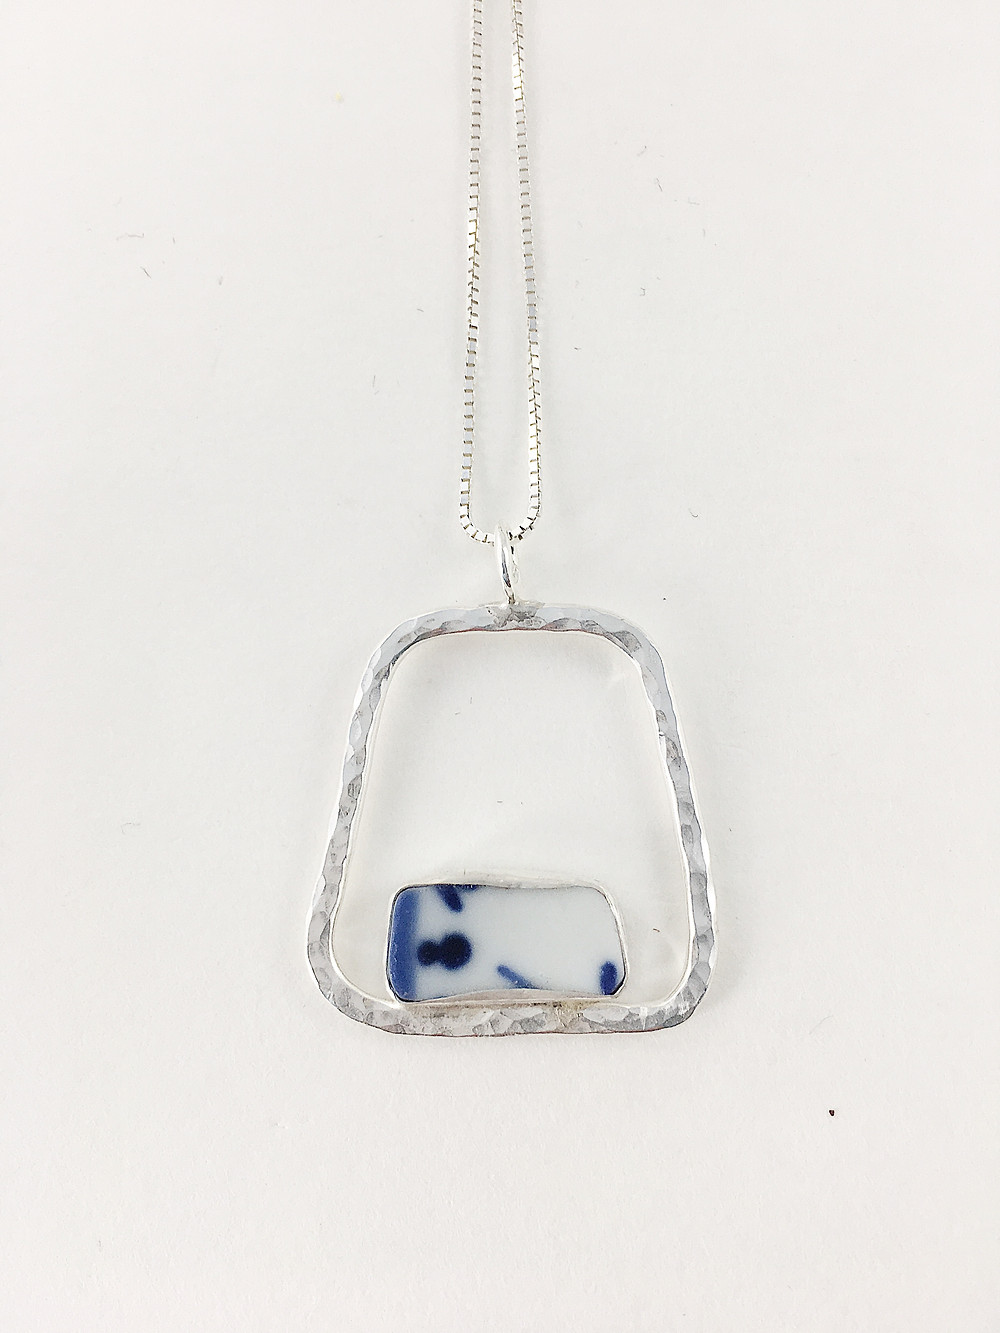 Ming China pendant geometric jewelry handmade jewelry broken china jewelry Chinese Porcelain